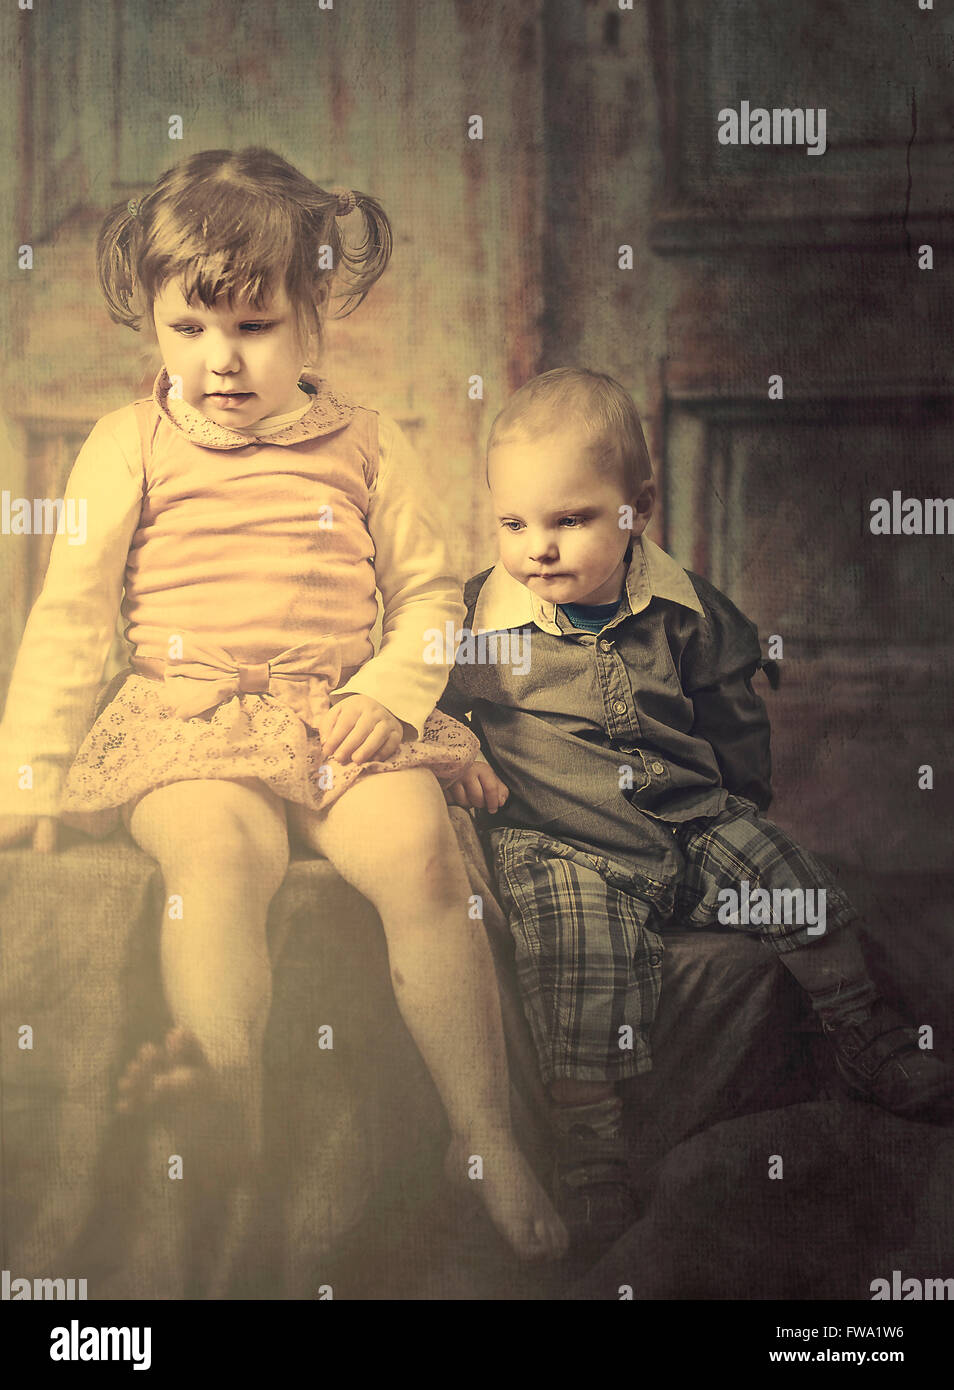 two small children siting next to each other looking down - Stock Image